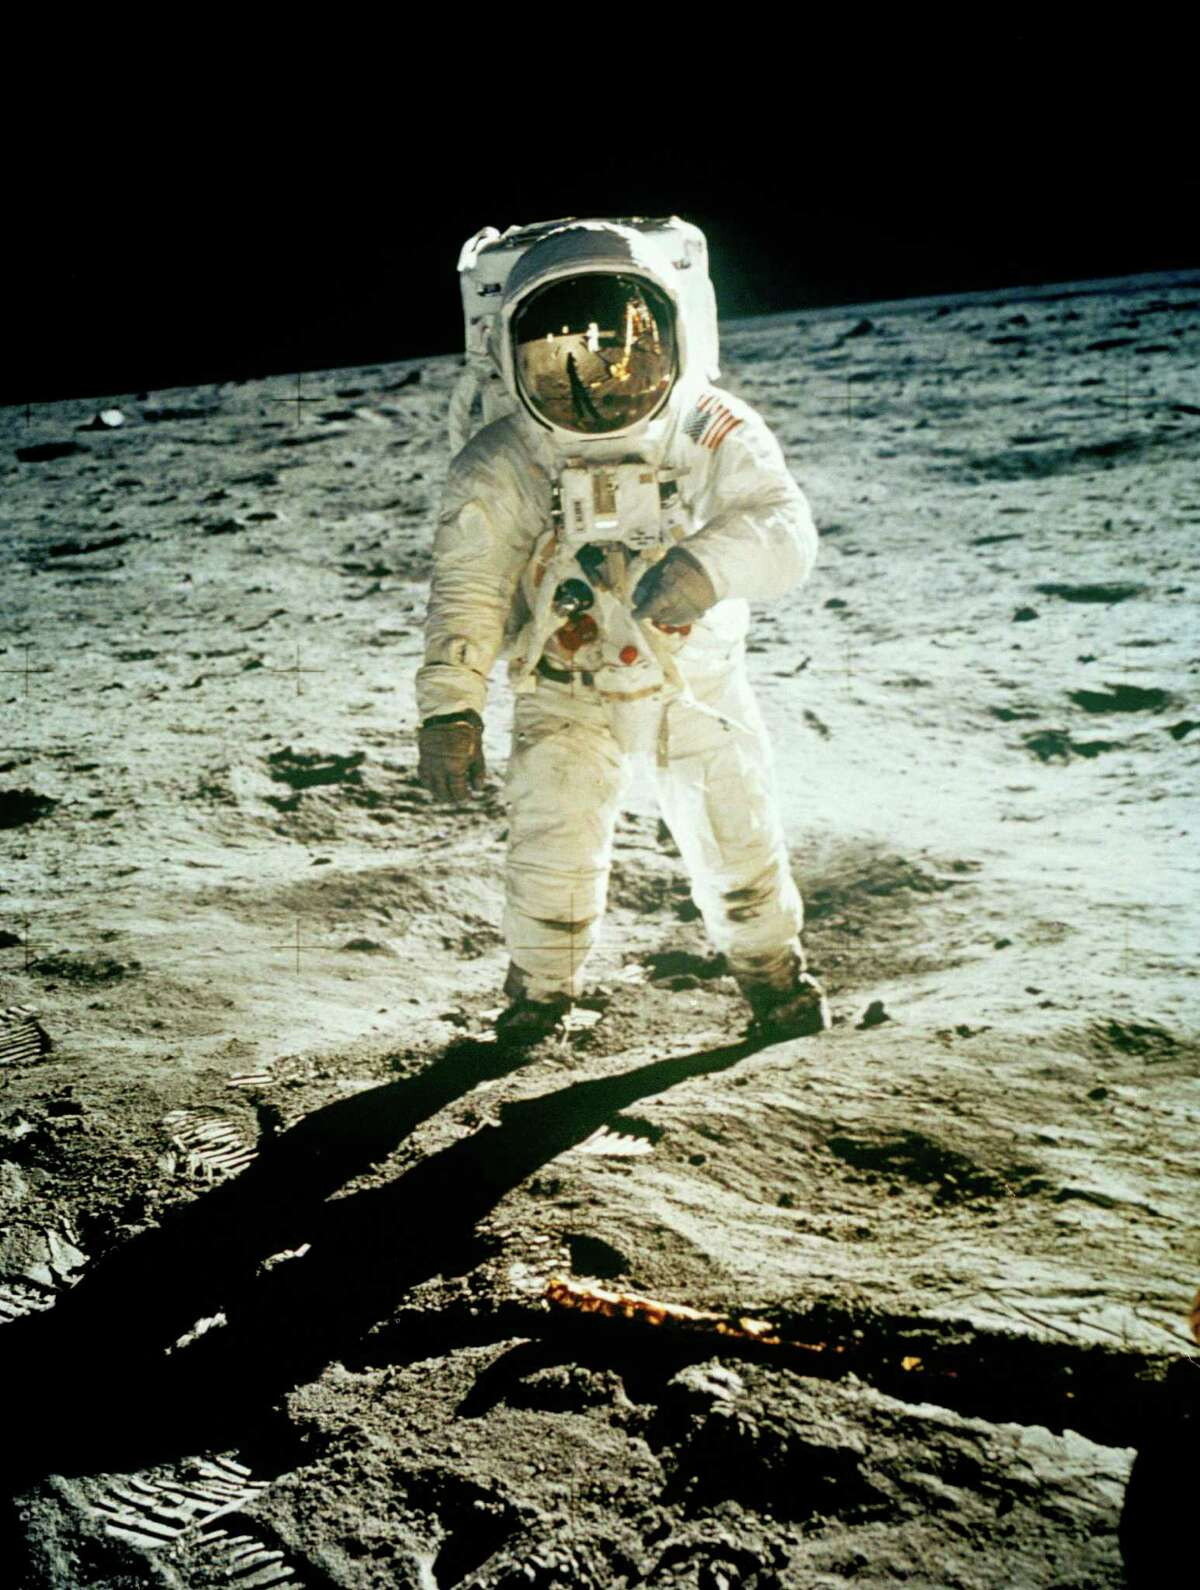 In this July 20, 1969 file photo from NASA, Astronaut Edwin E. Aldrin Jr., lunar module pilot, is photographed walking near the lunar module during the Apollo 11 extravehicular activity. (AP Photo, NASA ,file)